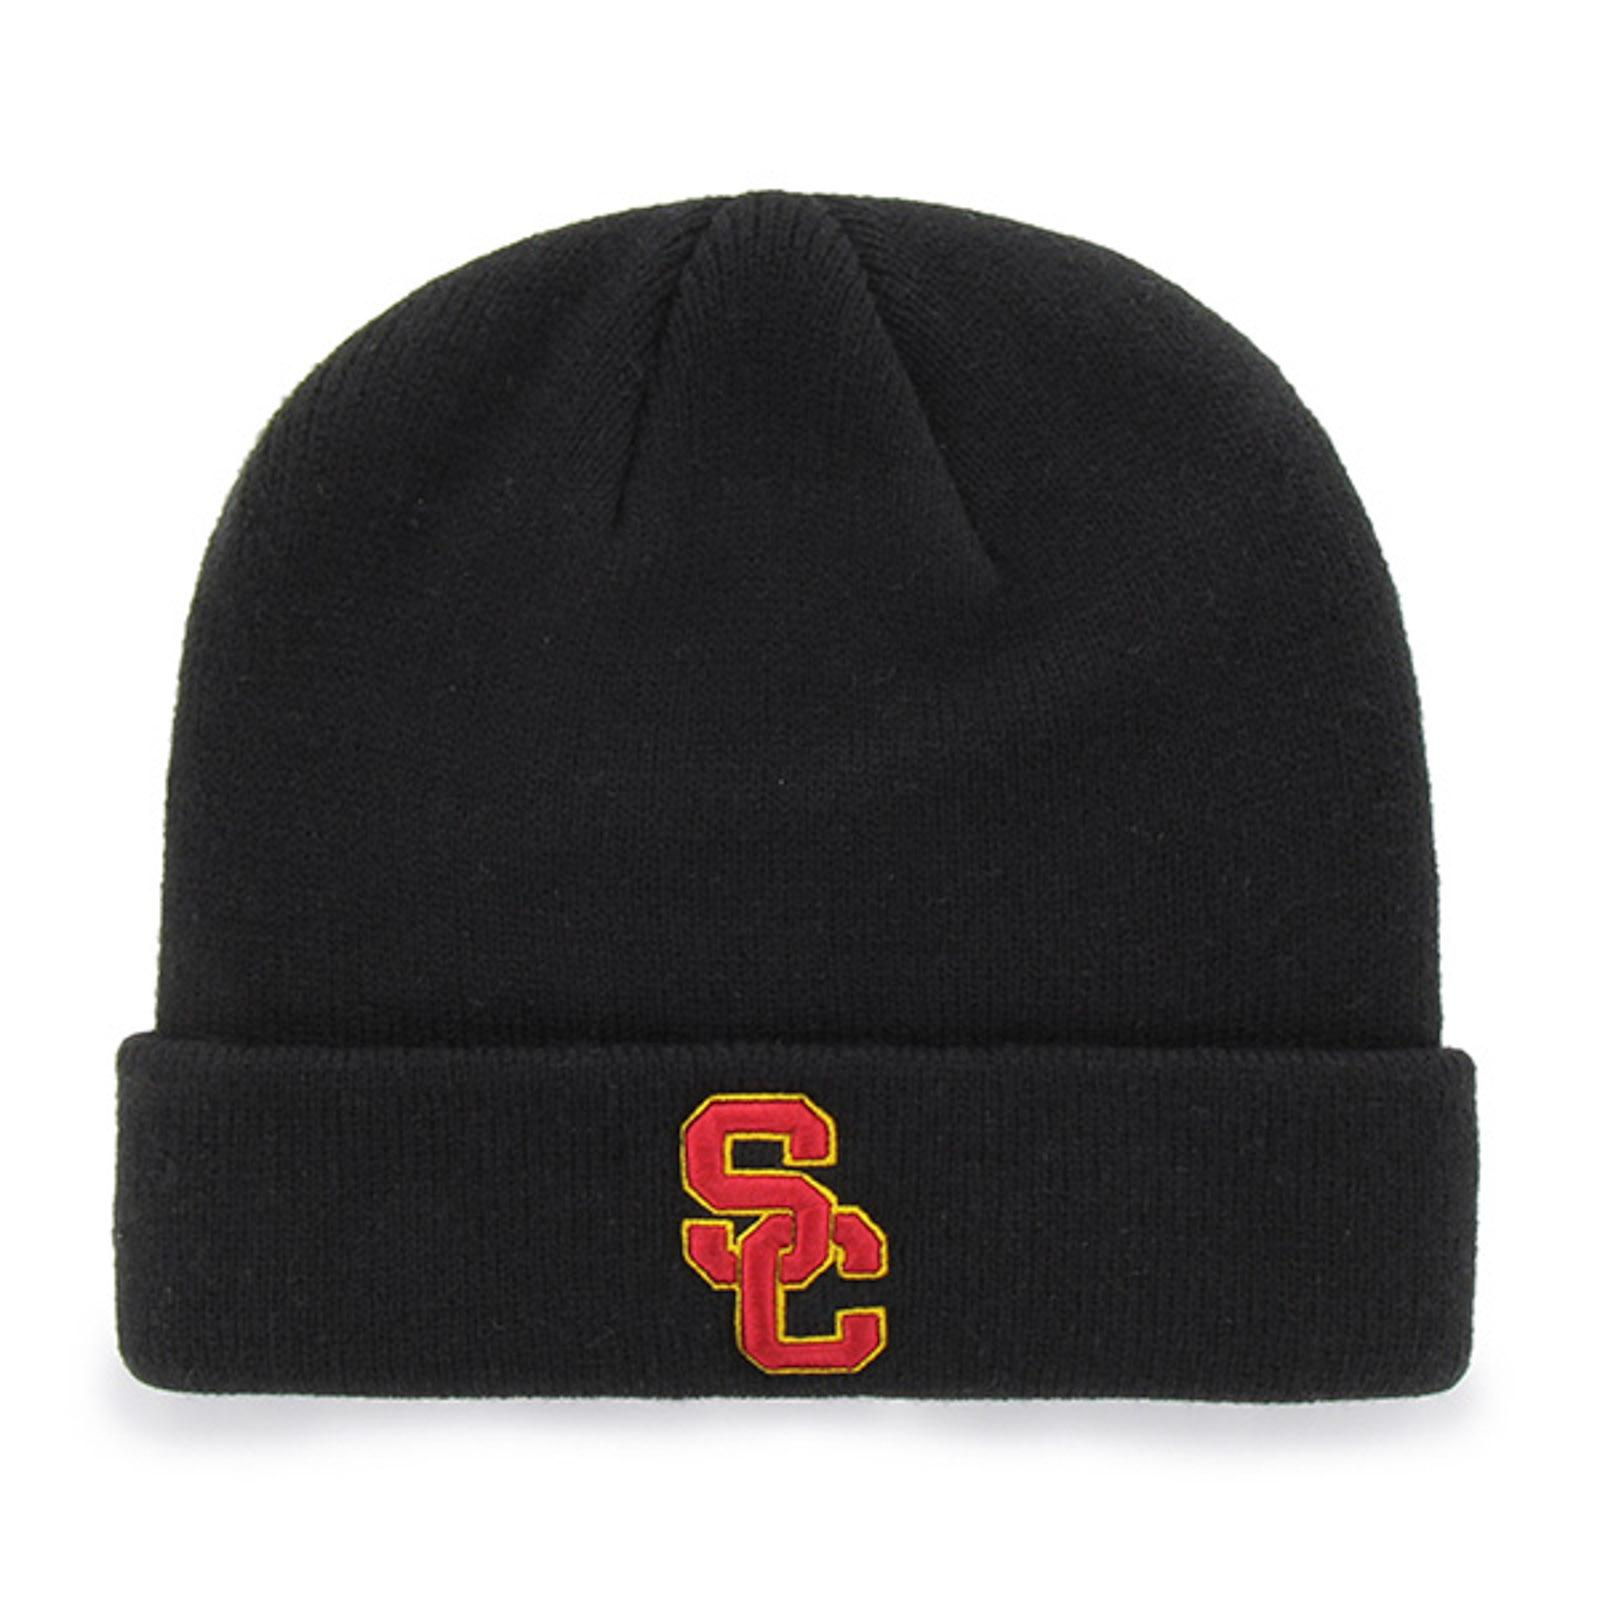 USC Raised Cuff Knit Beanie